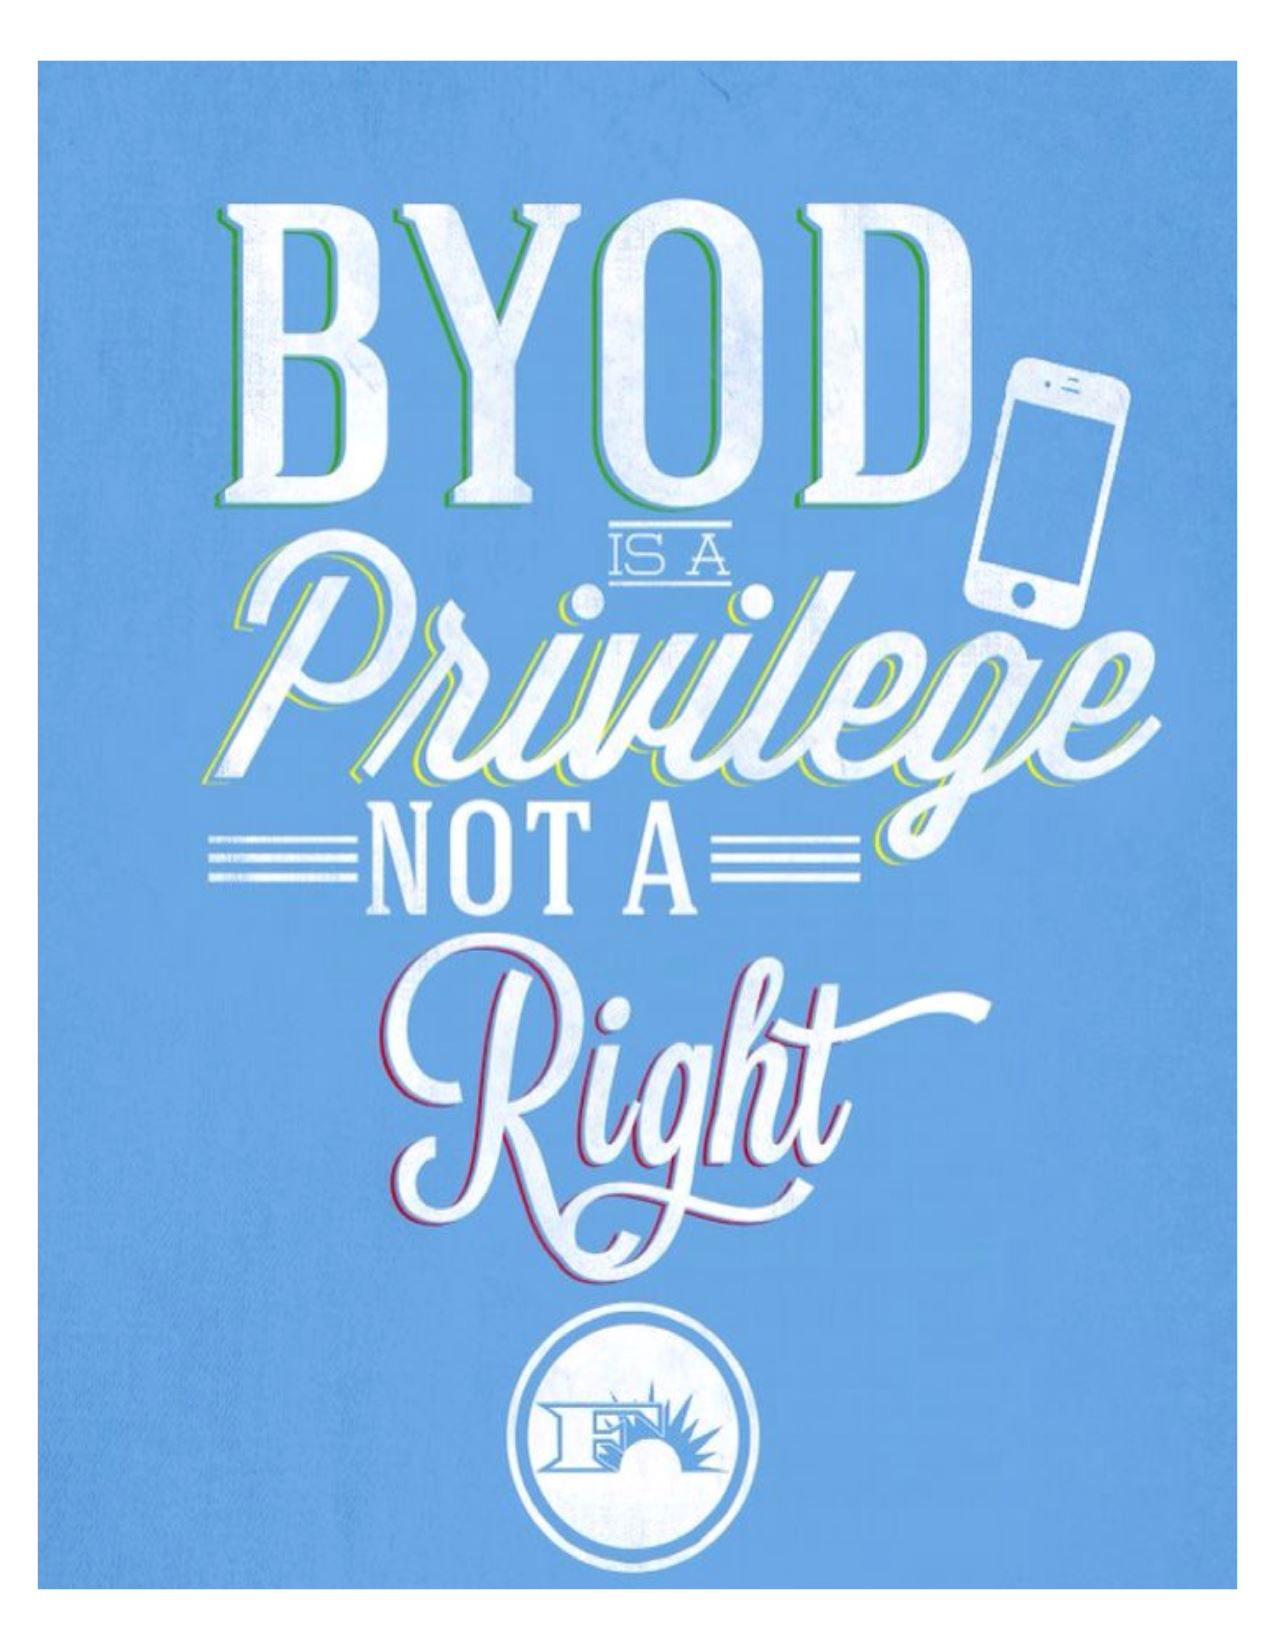 BYOD is a Privilege not a right